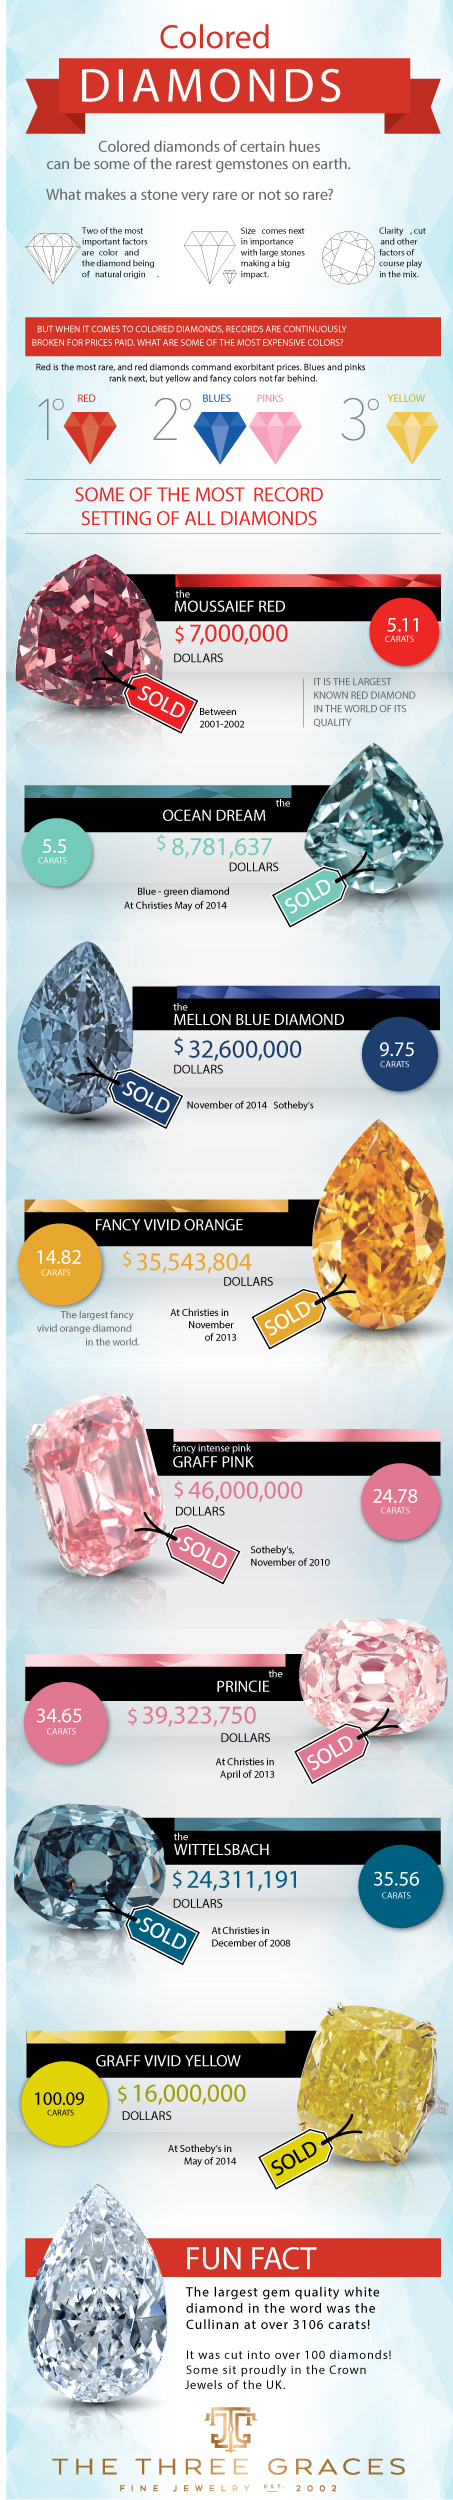 Record Setting Colored Diamonds Infographic